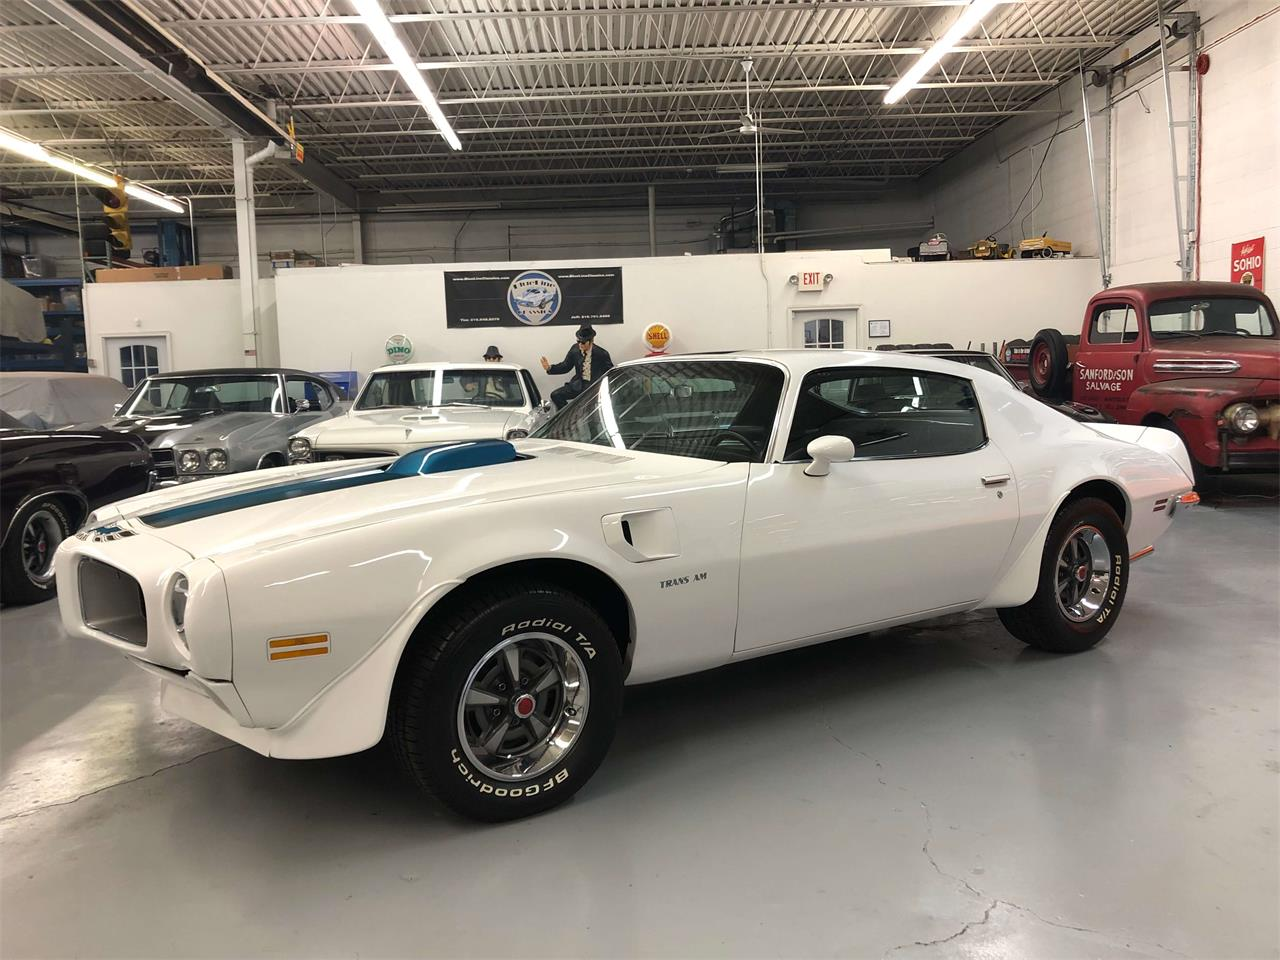 1970 Pontiac Firebird Trans Am for sale in North Royalton, OH – photo 2